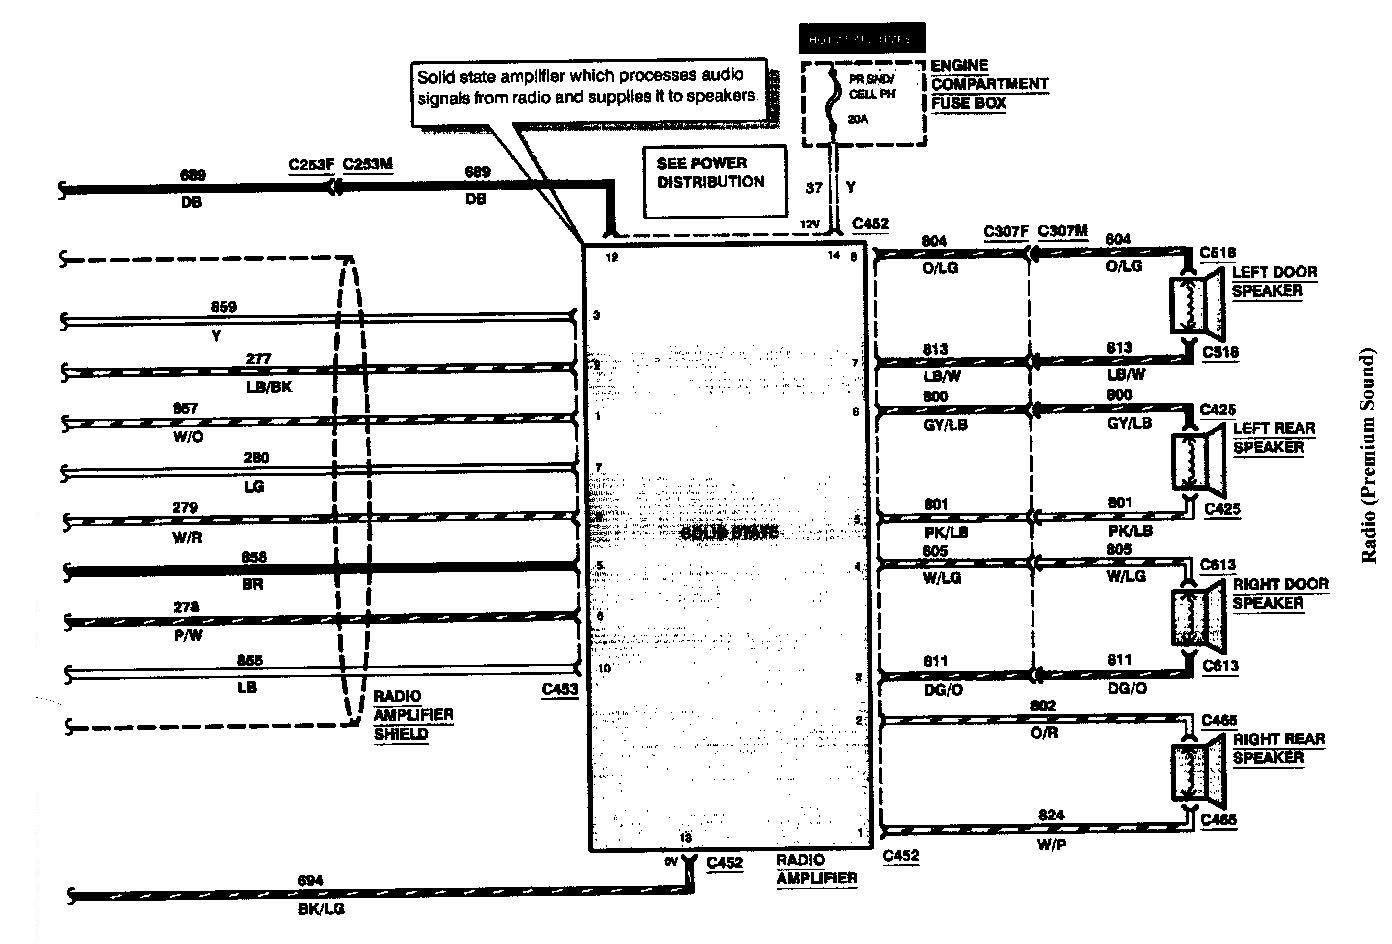 95Mark8 Premium Sound Wiring2 95 mark 8 jbl wiring diagram needed lincolns online message forum 1995 lincoln town car stereo wiring diagram at gsmx.co